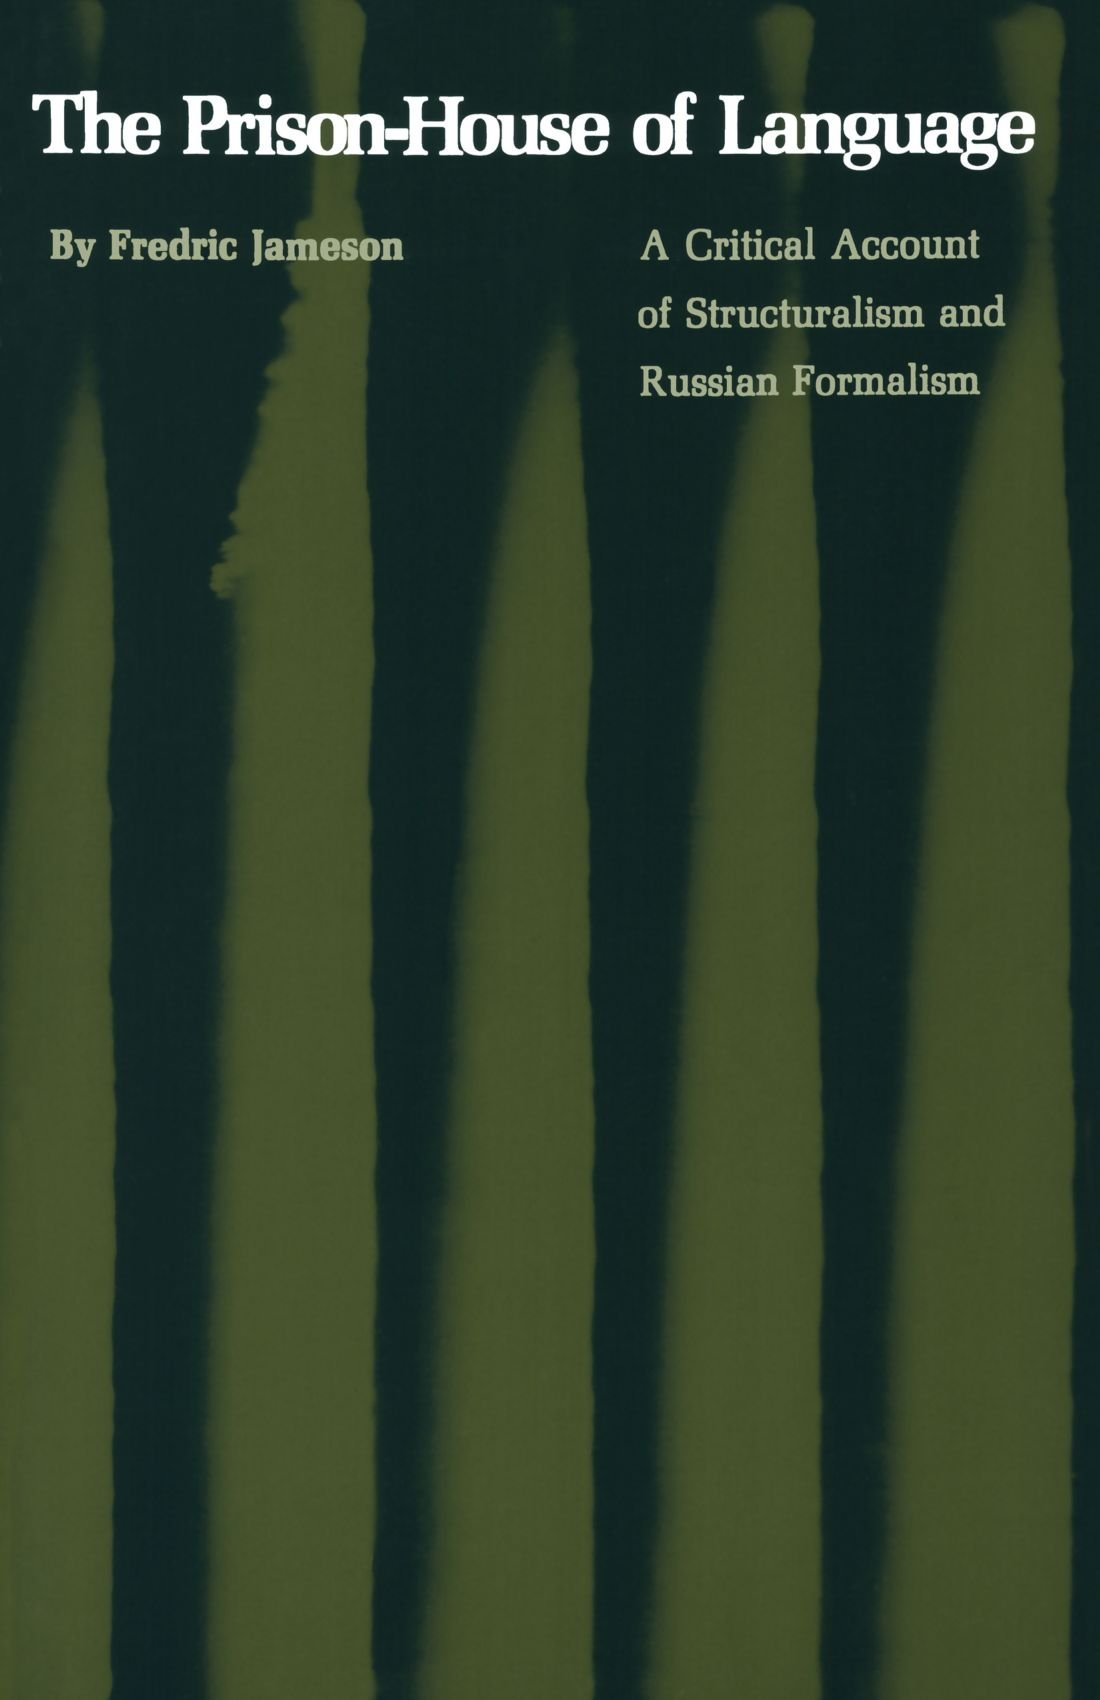 The Prison-House of Language: A Critical Account of Structuralism and Russian Formalism by Brand: Princeton U Press.